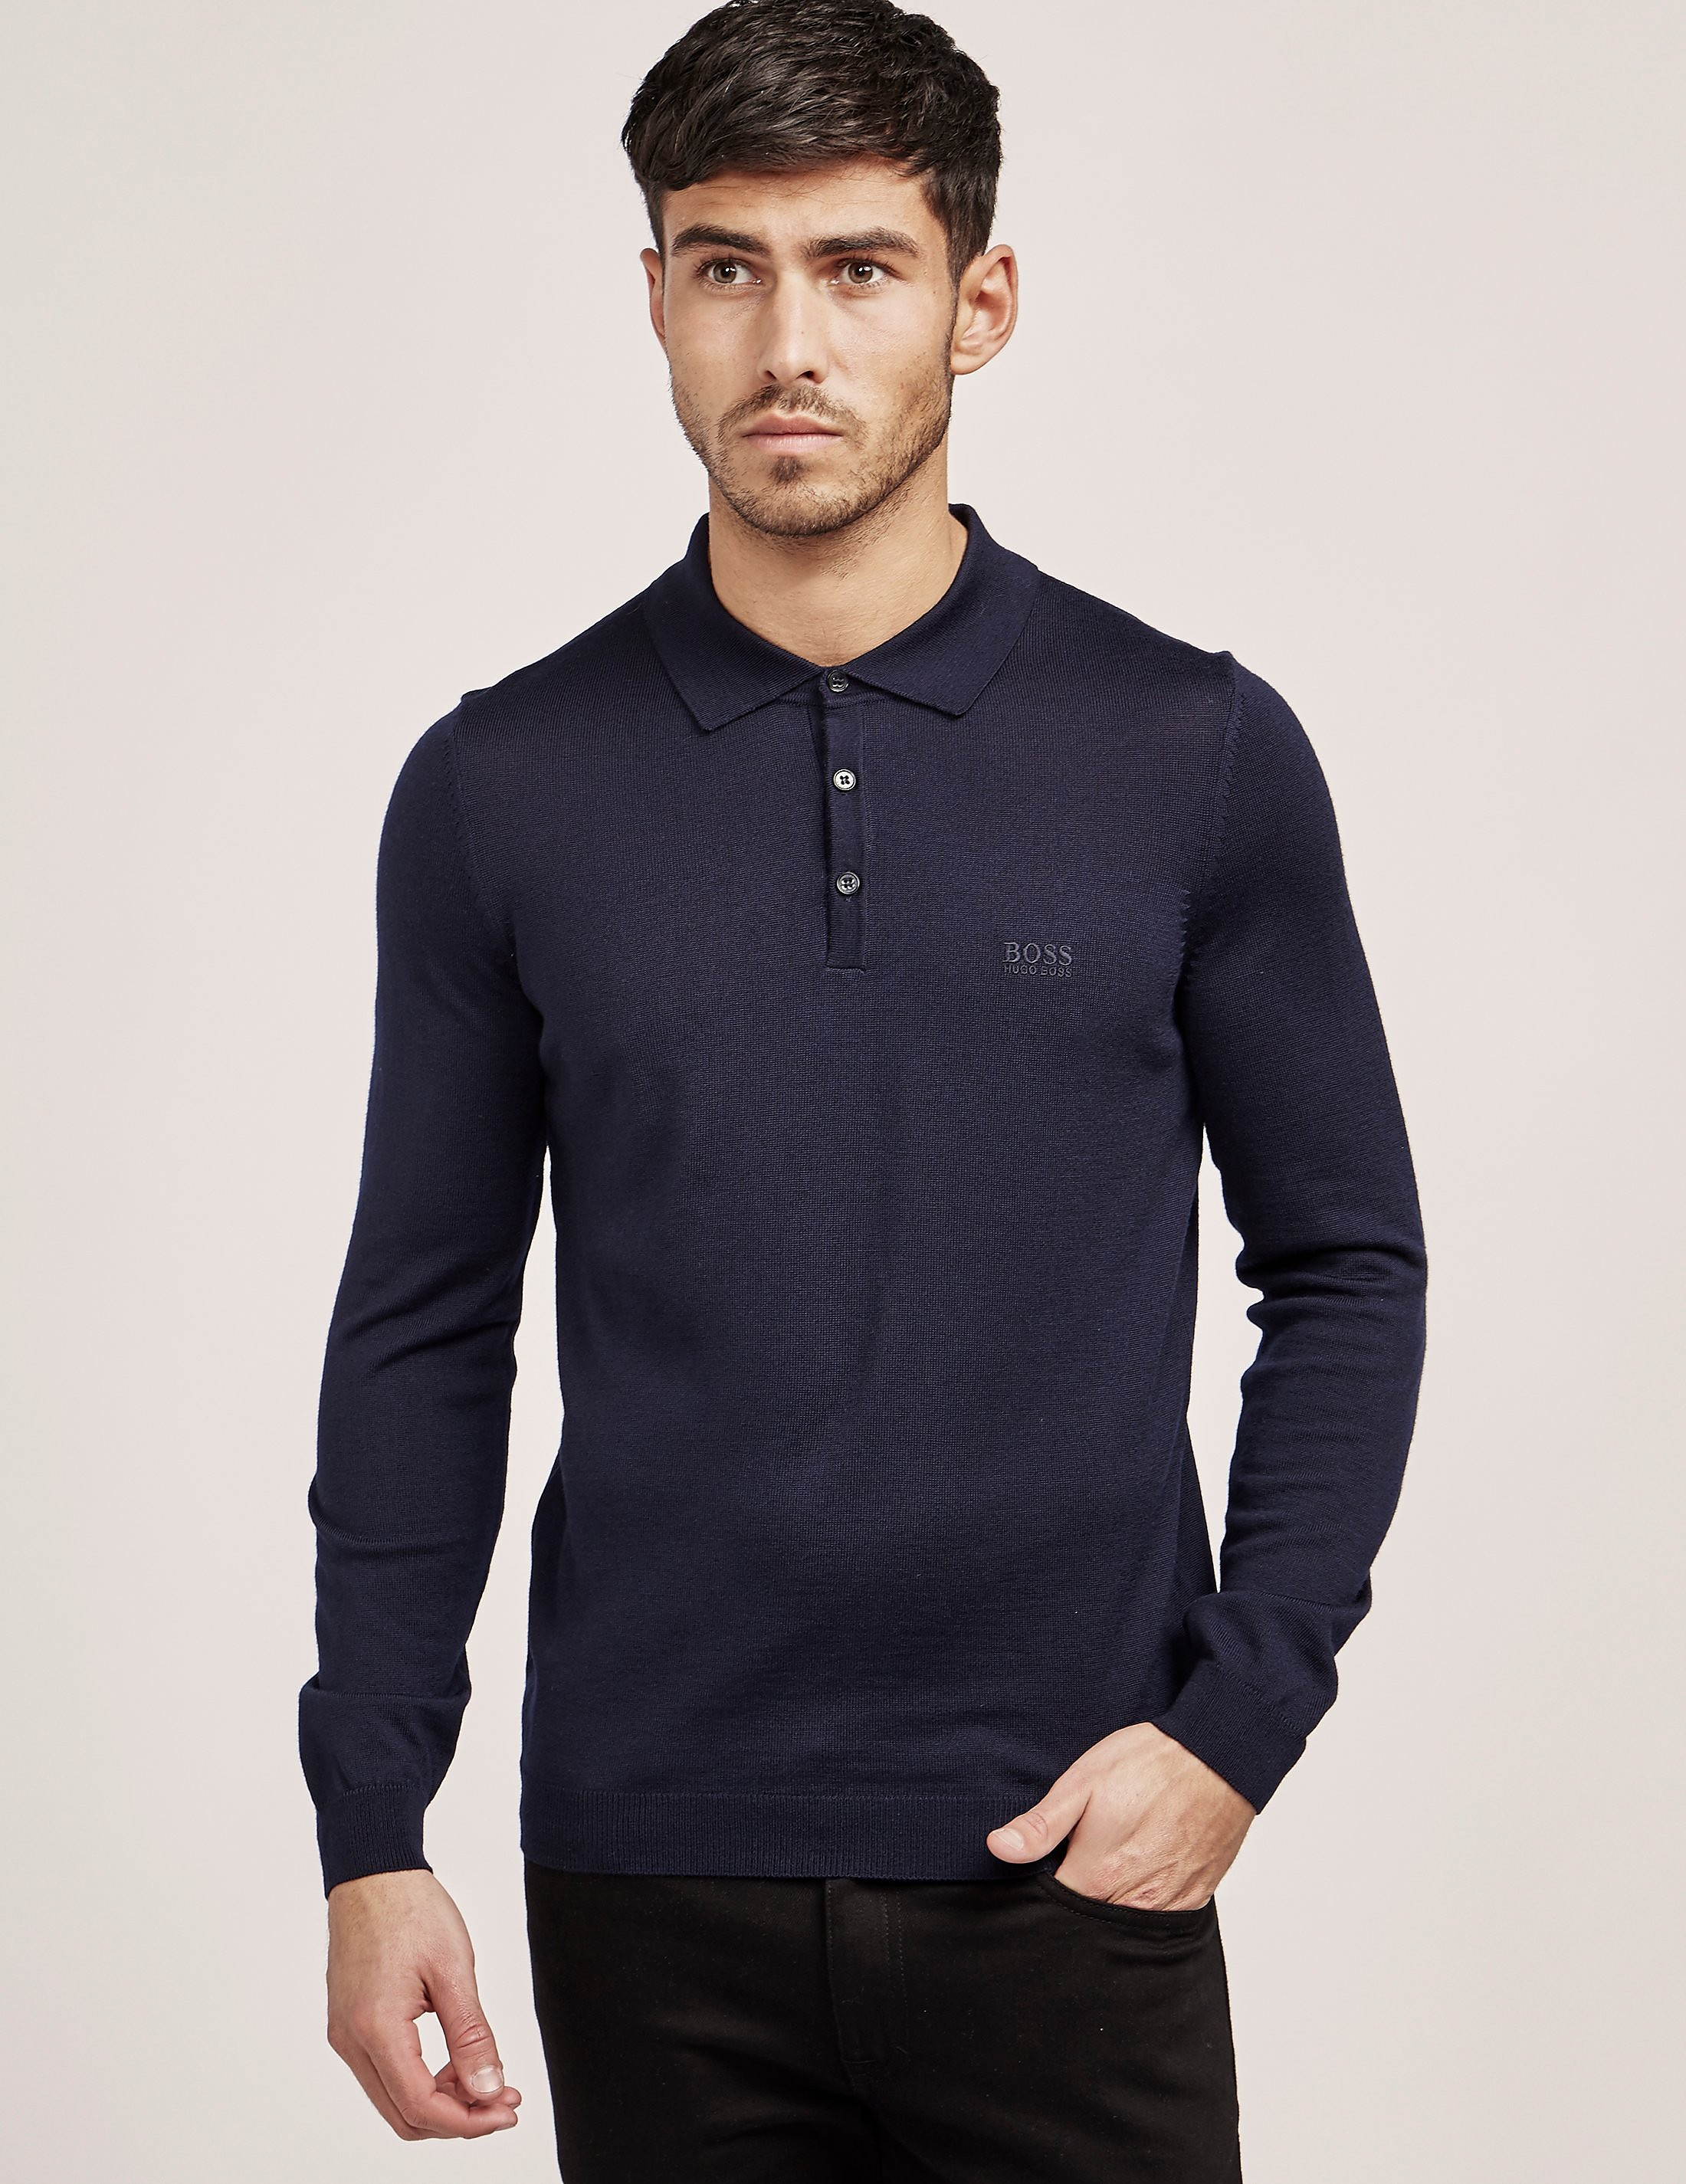 BOSS Knitted Long Sleeve Polo Shirt